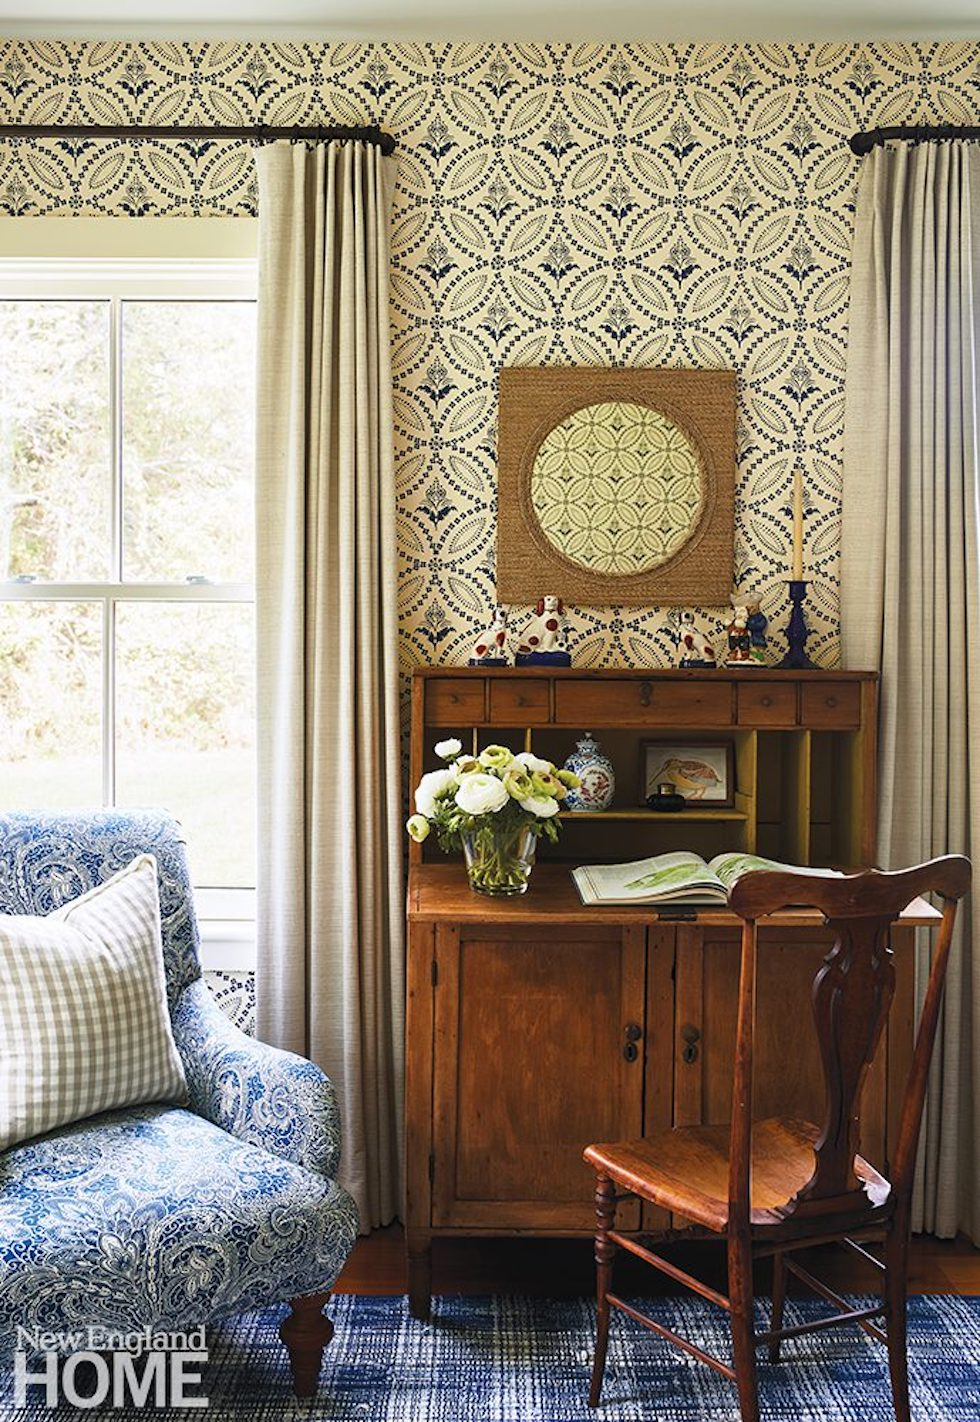 Inspired By: A Cozy Island Home on Martha's Vineyard